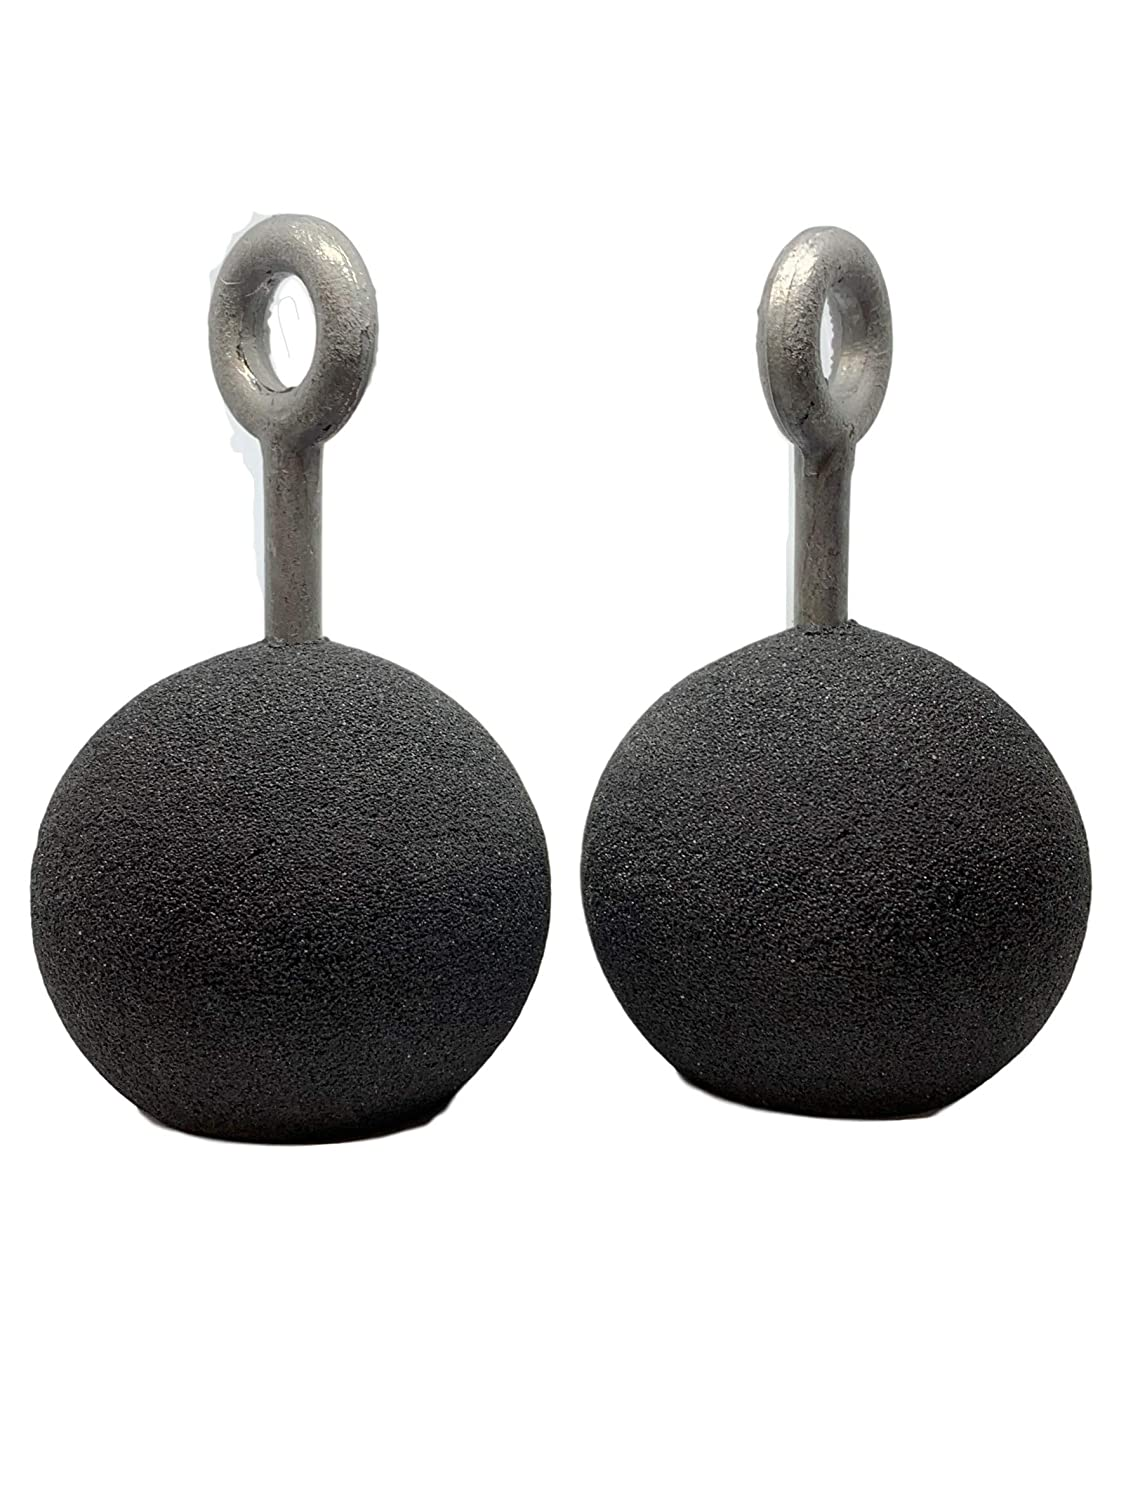 Amazon.com : Climbing Training Balls; Ninja Warrior Training ...